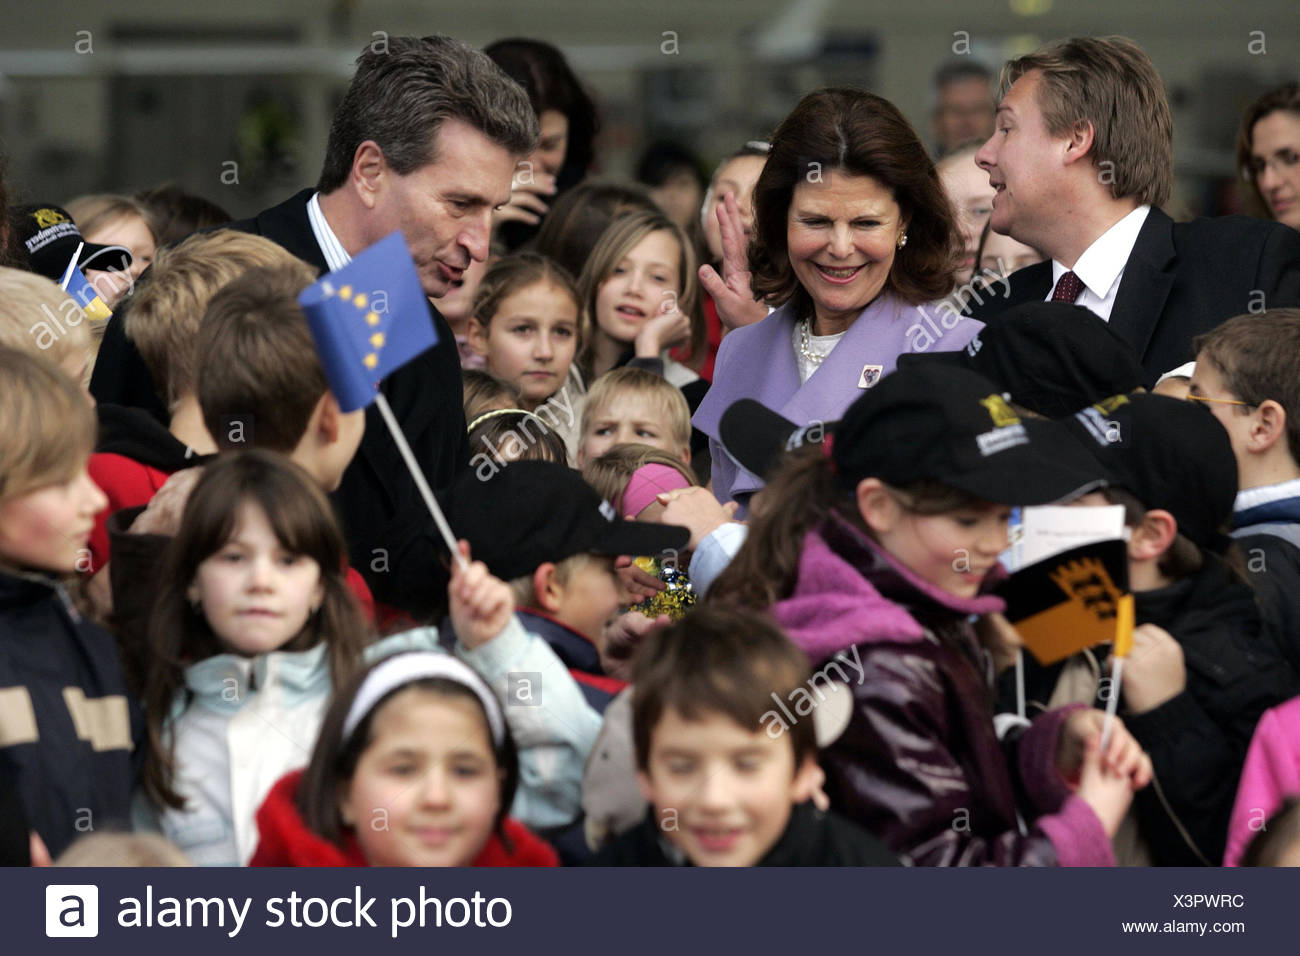 Queen Silvia of Sweden is welcomed by Wuerttembergs Prime Minister Guenther Oettinger at Stuttgart Airport, Stuttgart, Germany - Stock Image